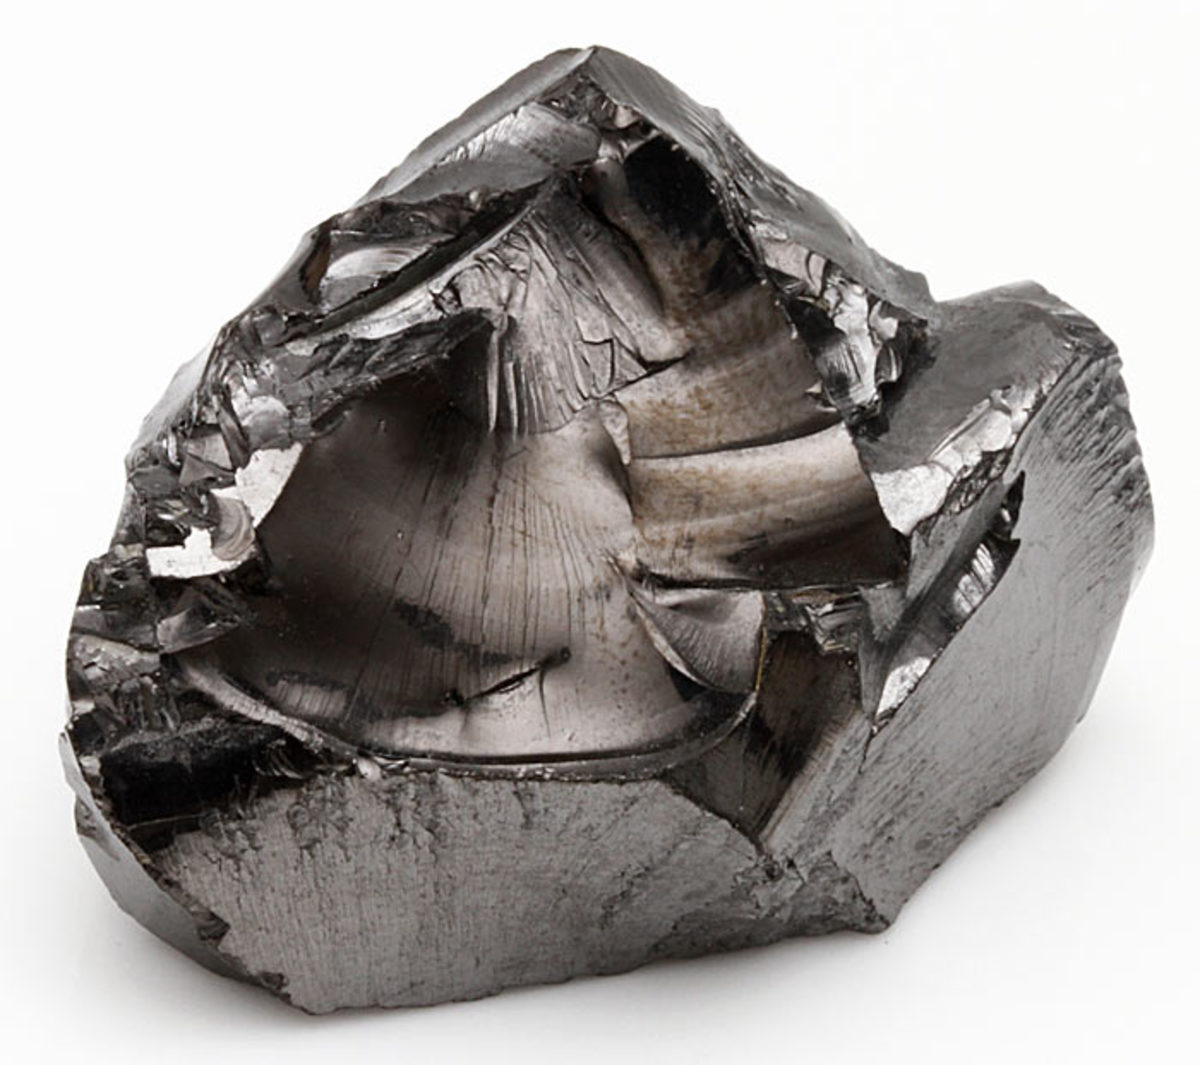 This is Type II Shungite in its natural state but is the most common form. It can be easily shaped and polished. It contains 50 to 70% organic carbon.